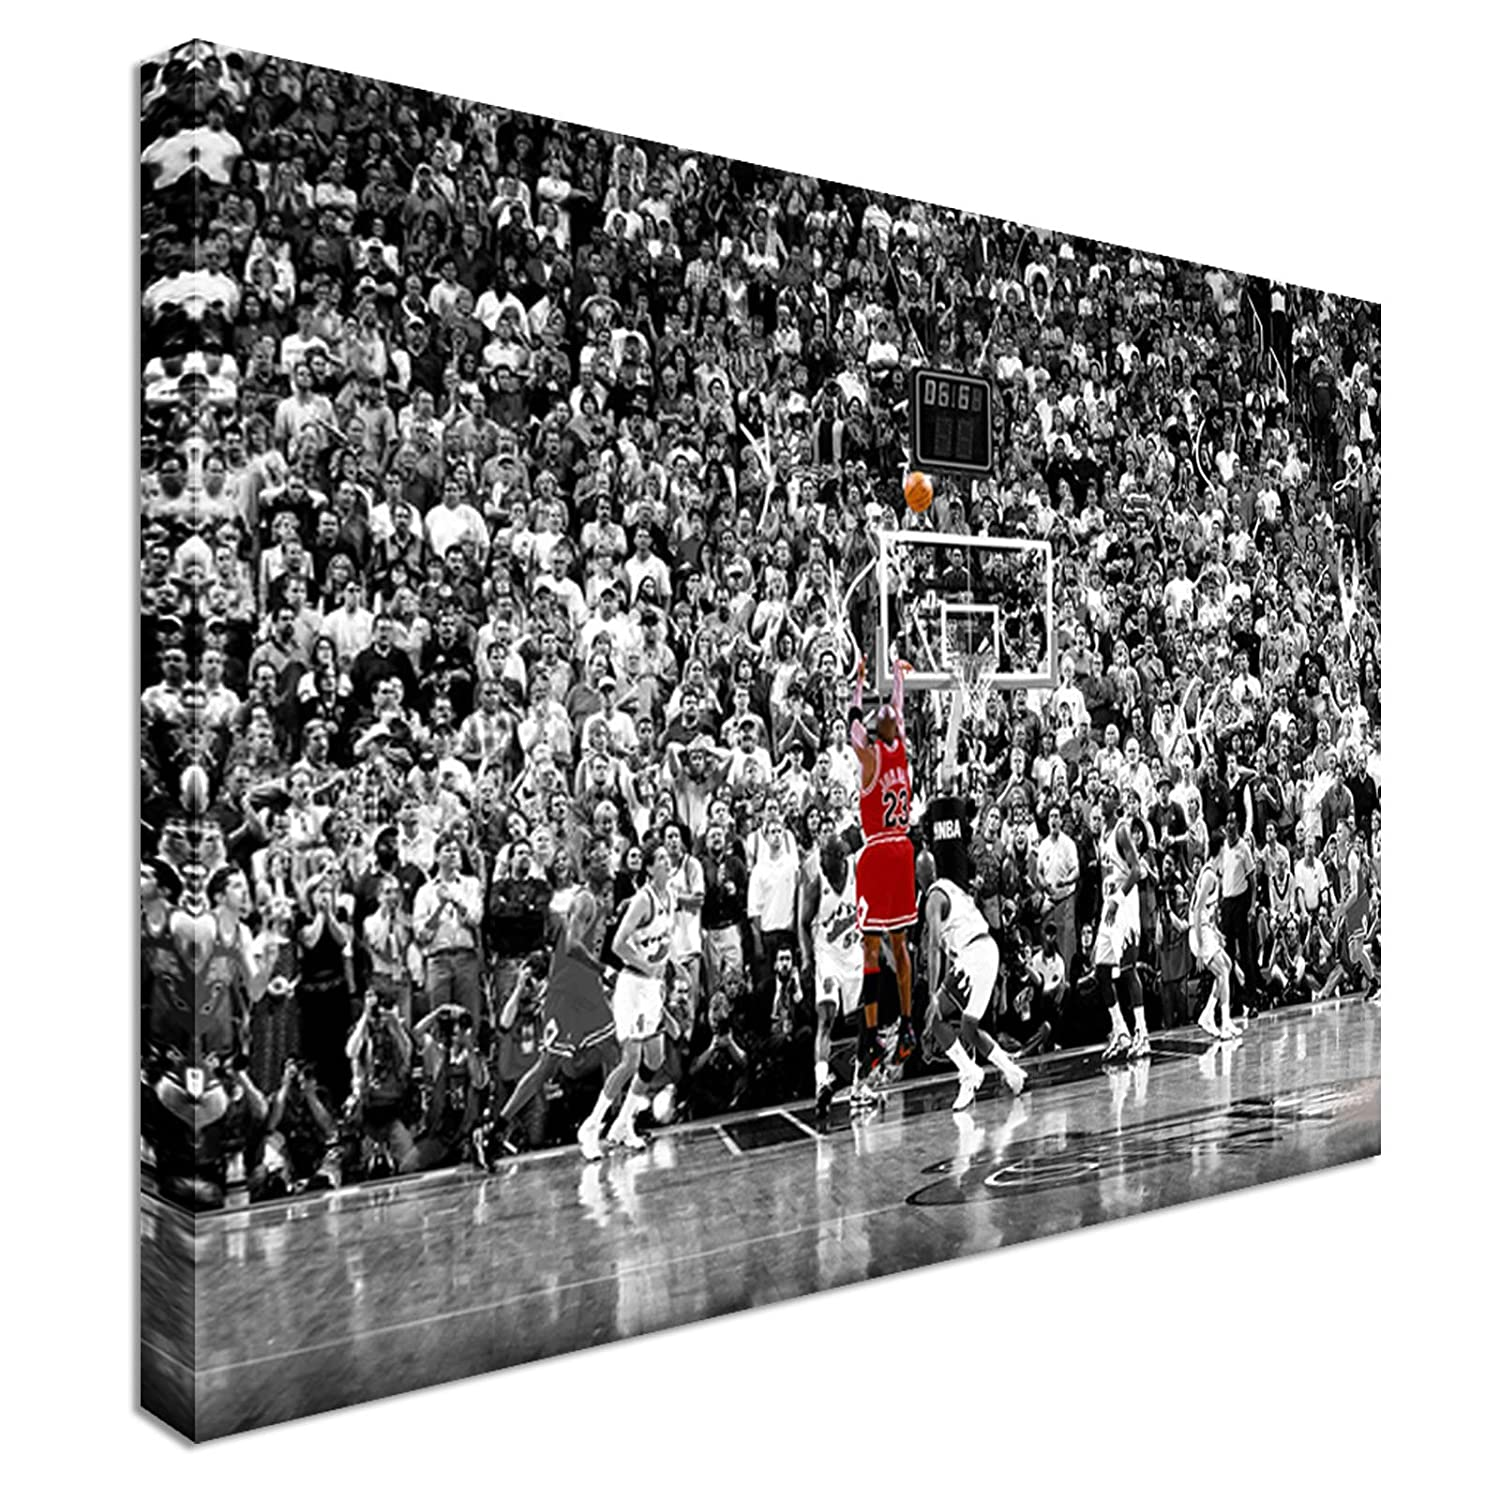 High Quality Michael Jordan BA Basketball Last Shot   Canvas Print Sport Giant Wall Art  12x16 Inches: Amazon.co.uk: Kitchen U0026 Home